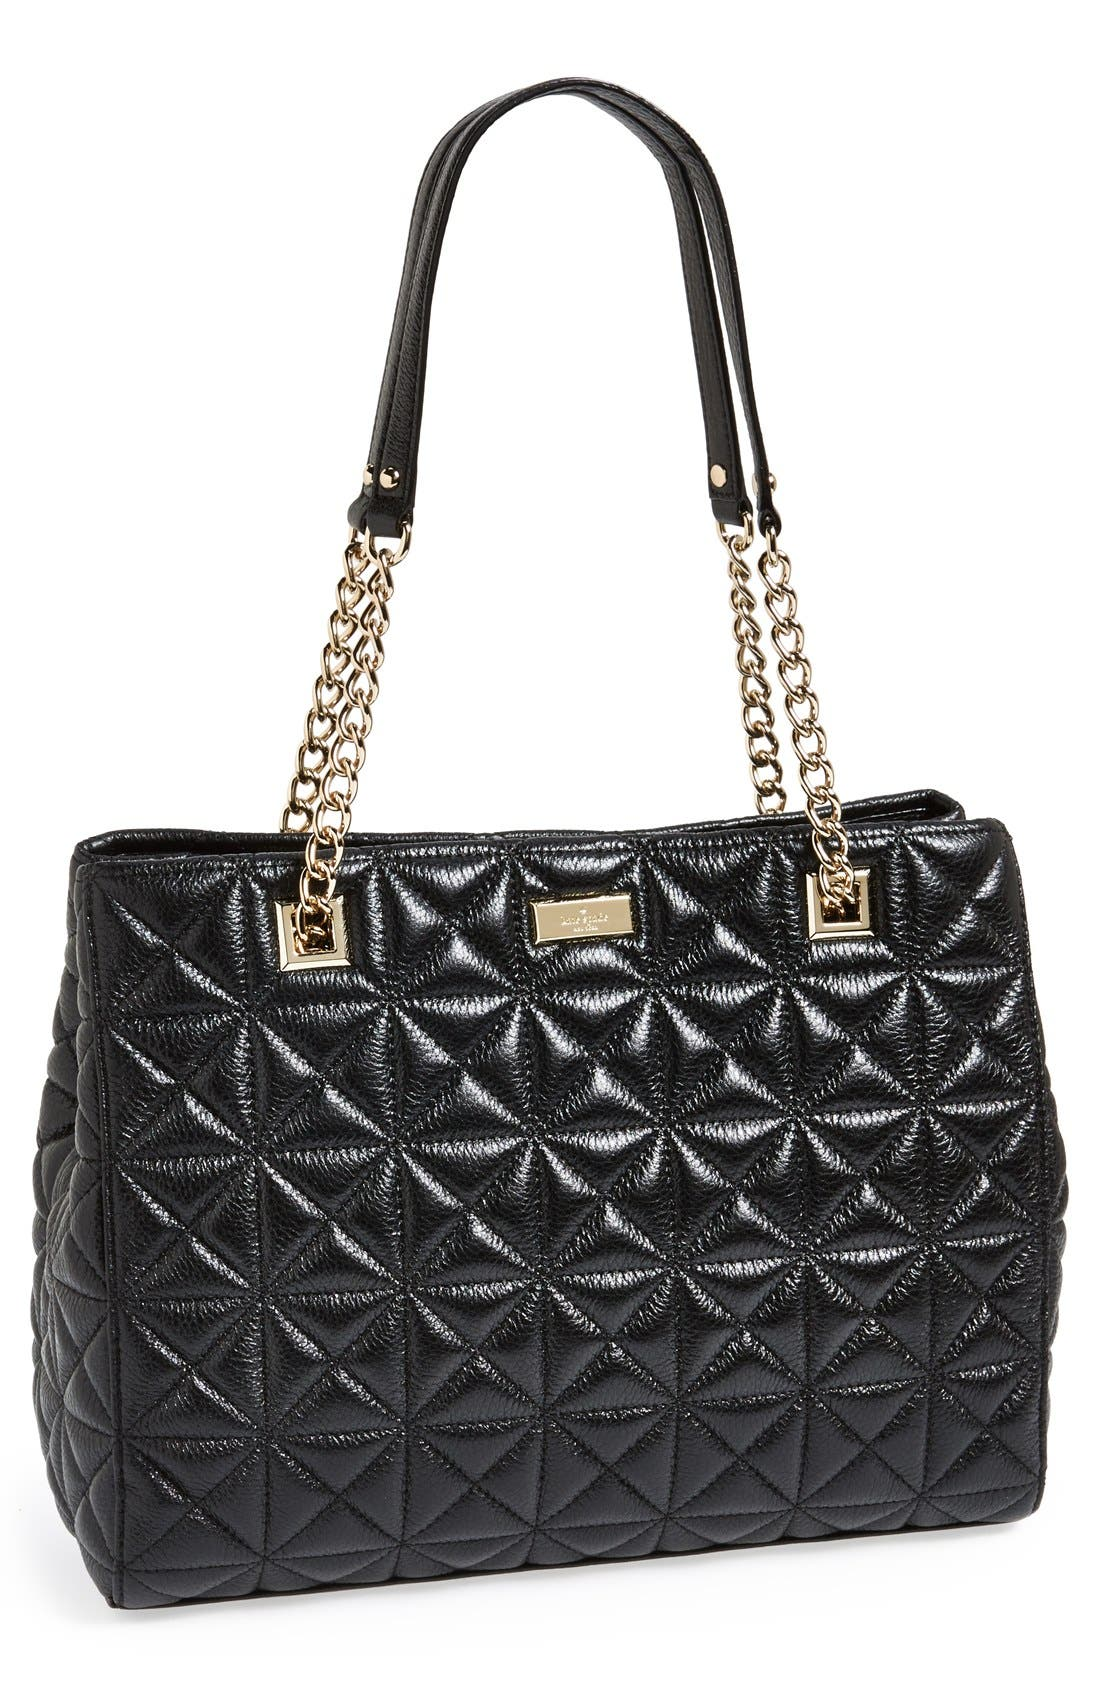 Alternate Image 1 Selected - kate spade new york 'sedgewick place - large phoebe' shoulder bag